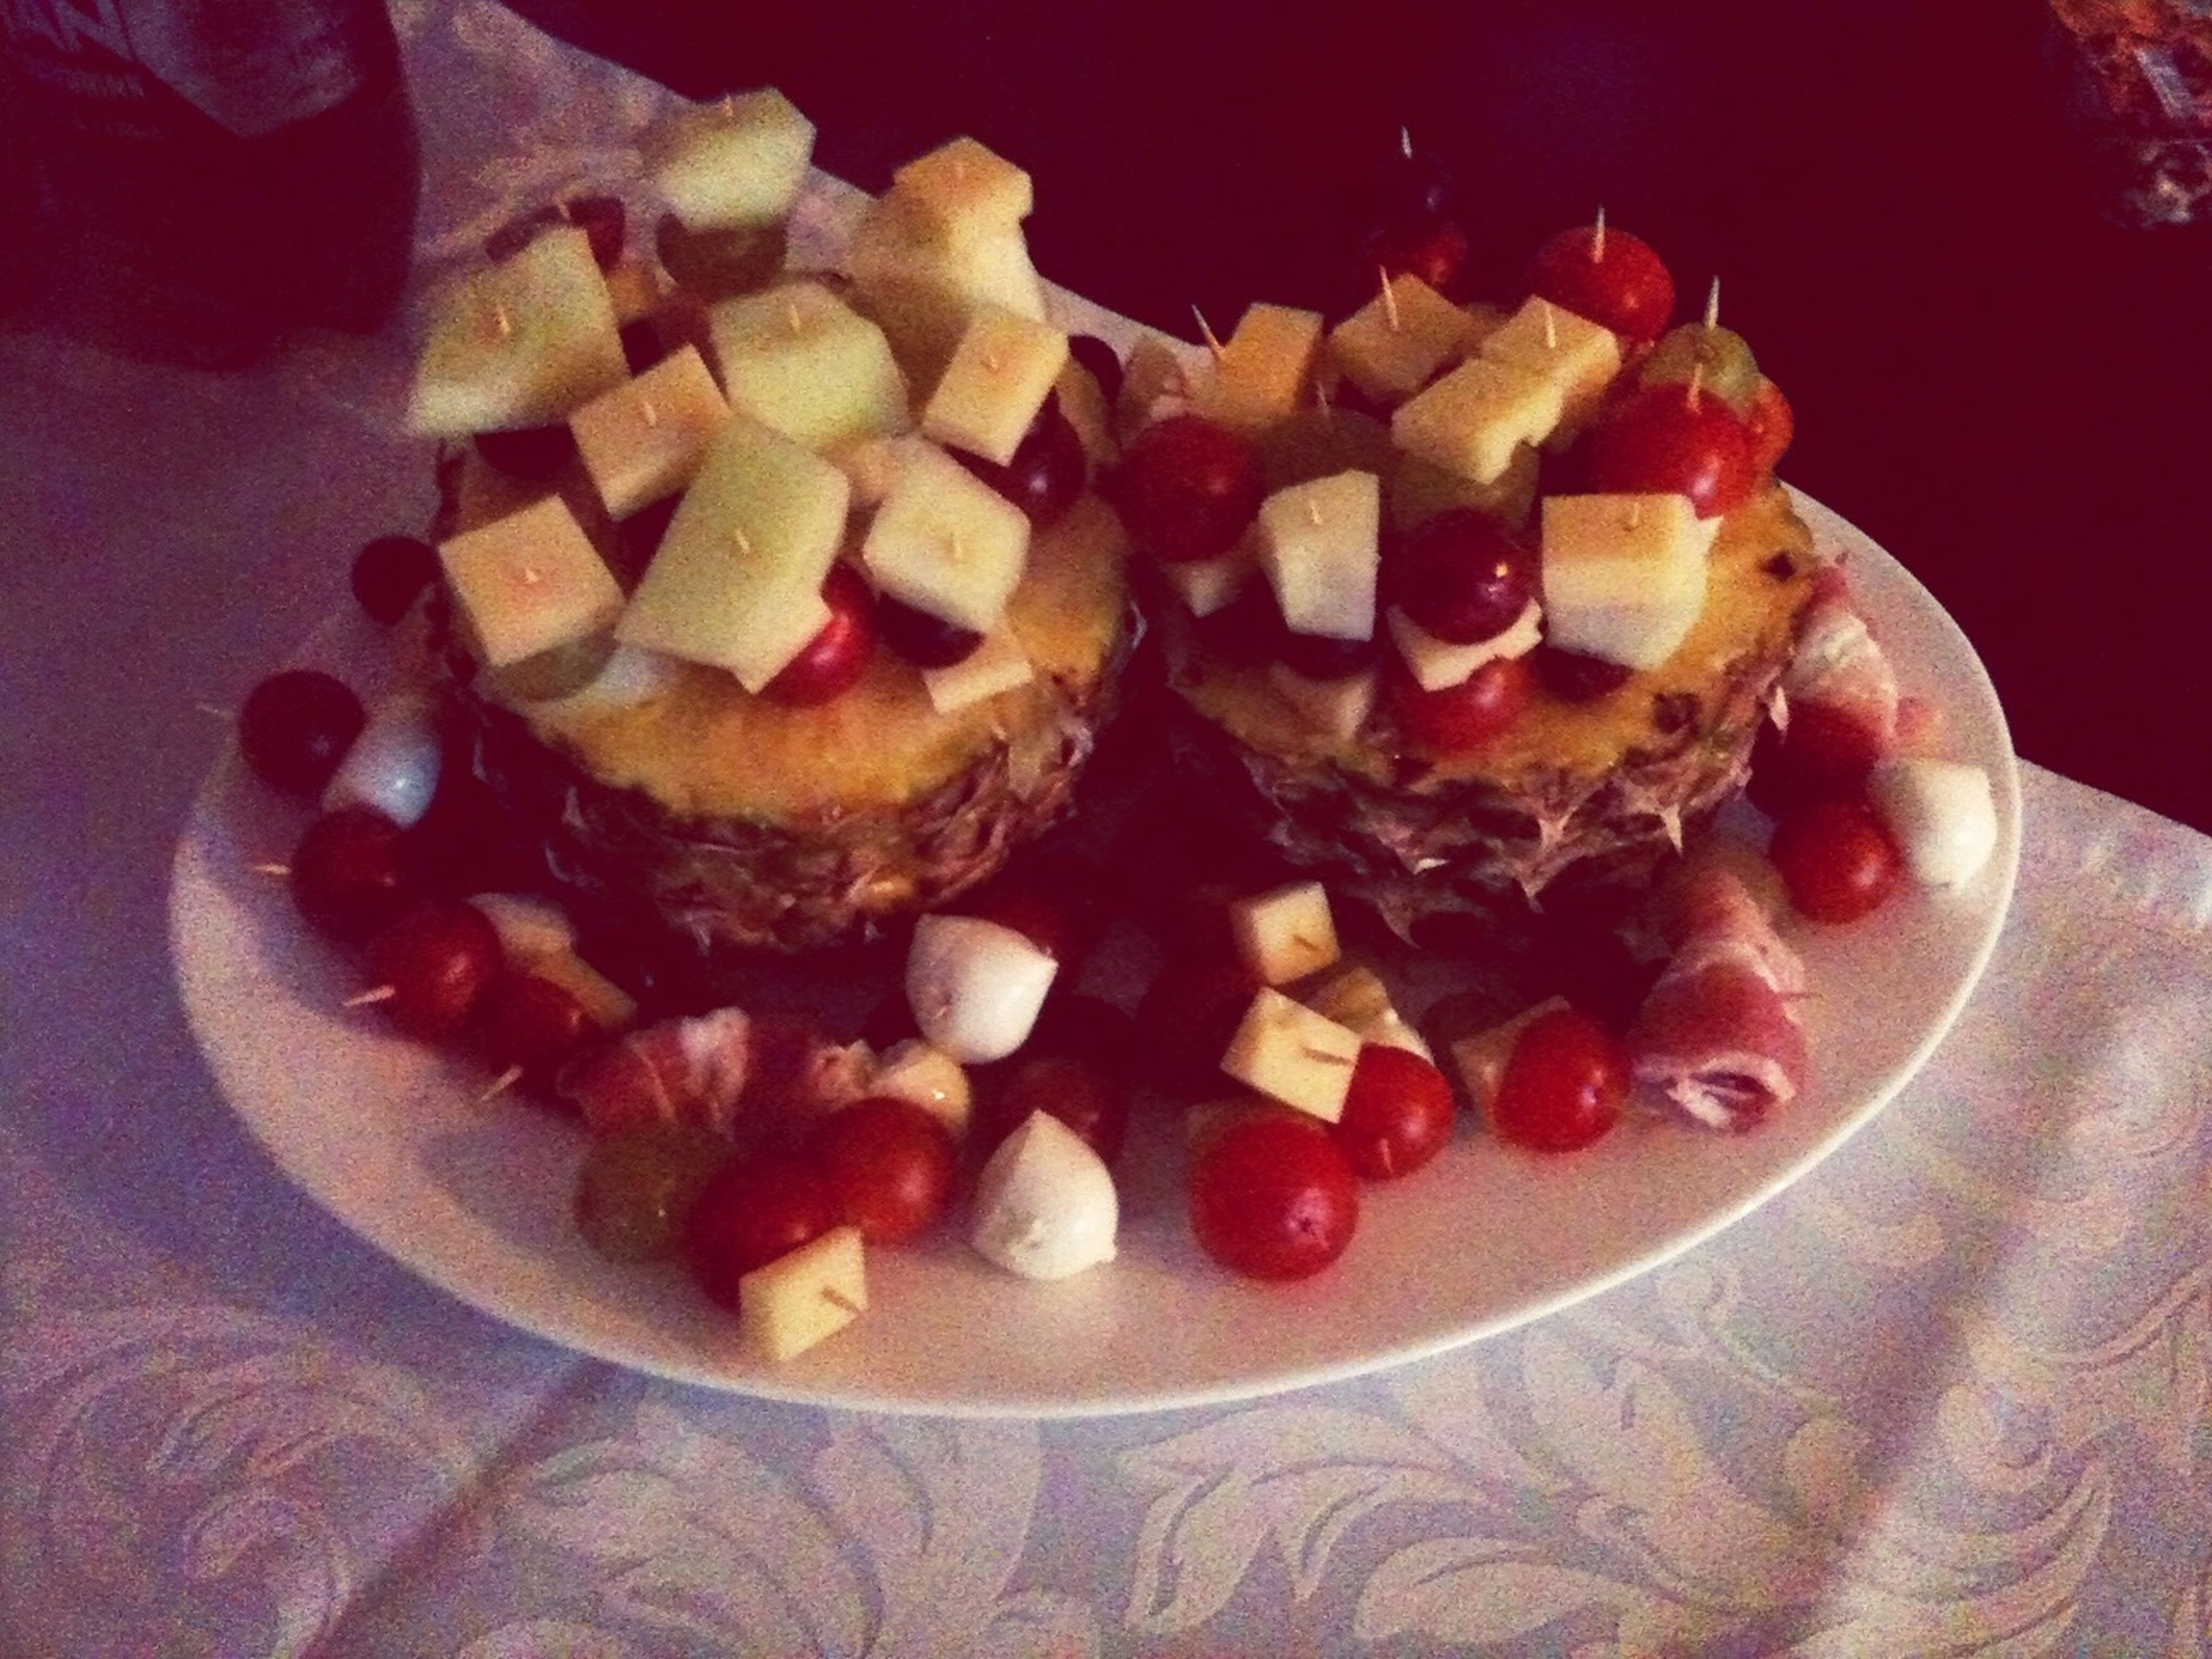 food and drink, food, freshness, indoors, ready-to-eat, still life, sweet food, indulgence, plate, dessert, unhealthy eating, table, serving size, temptation, close-up, high angle view, fruit, cake, slice